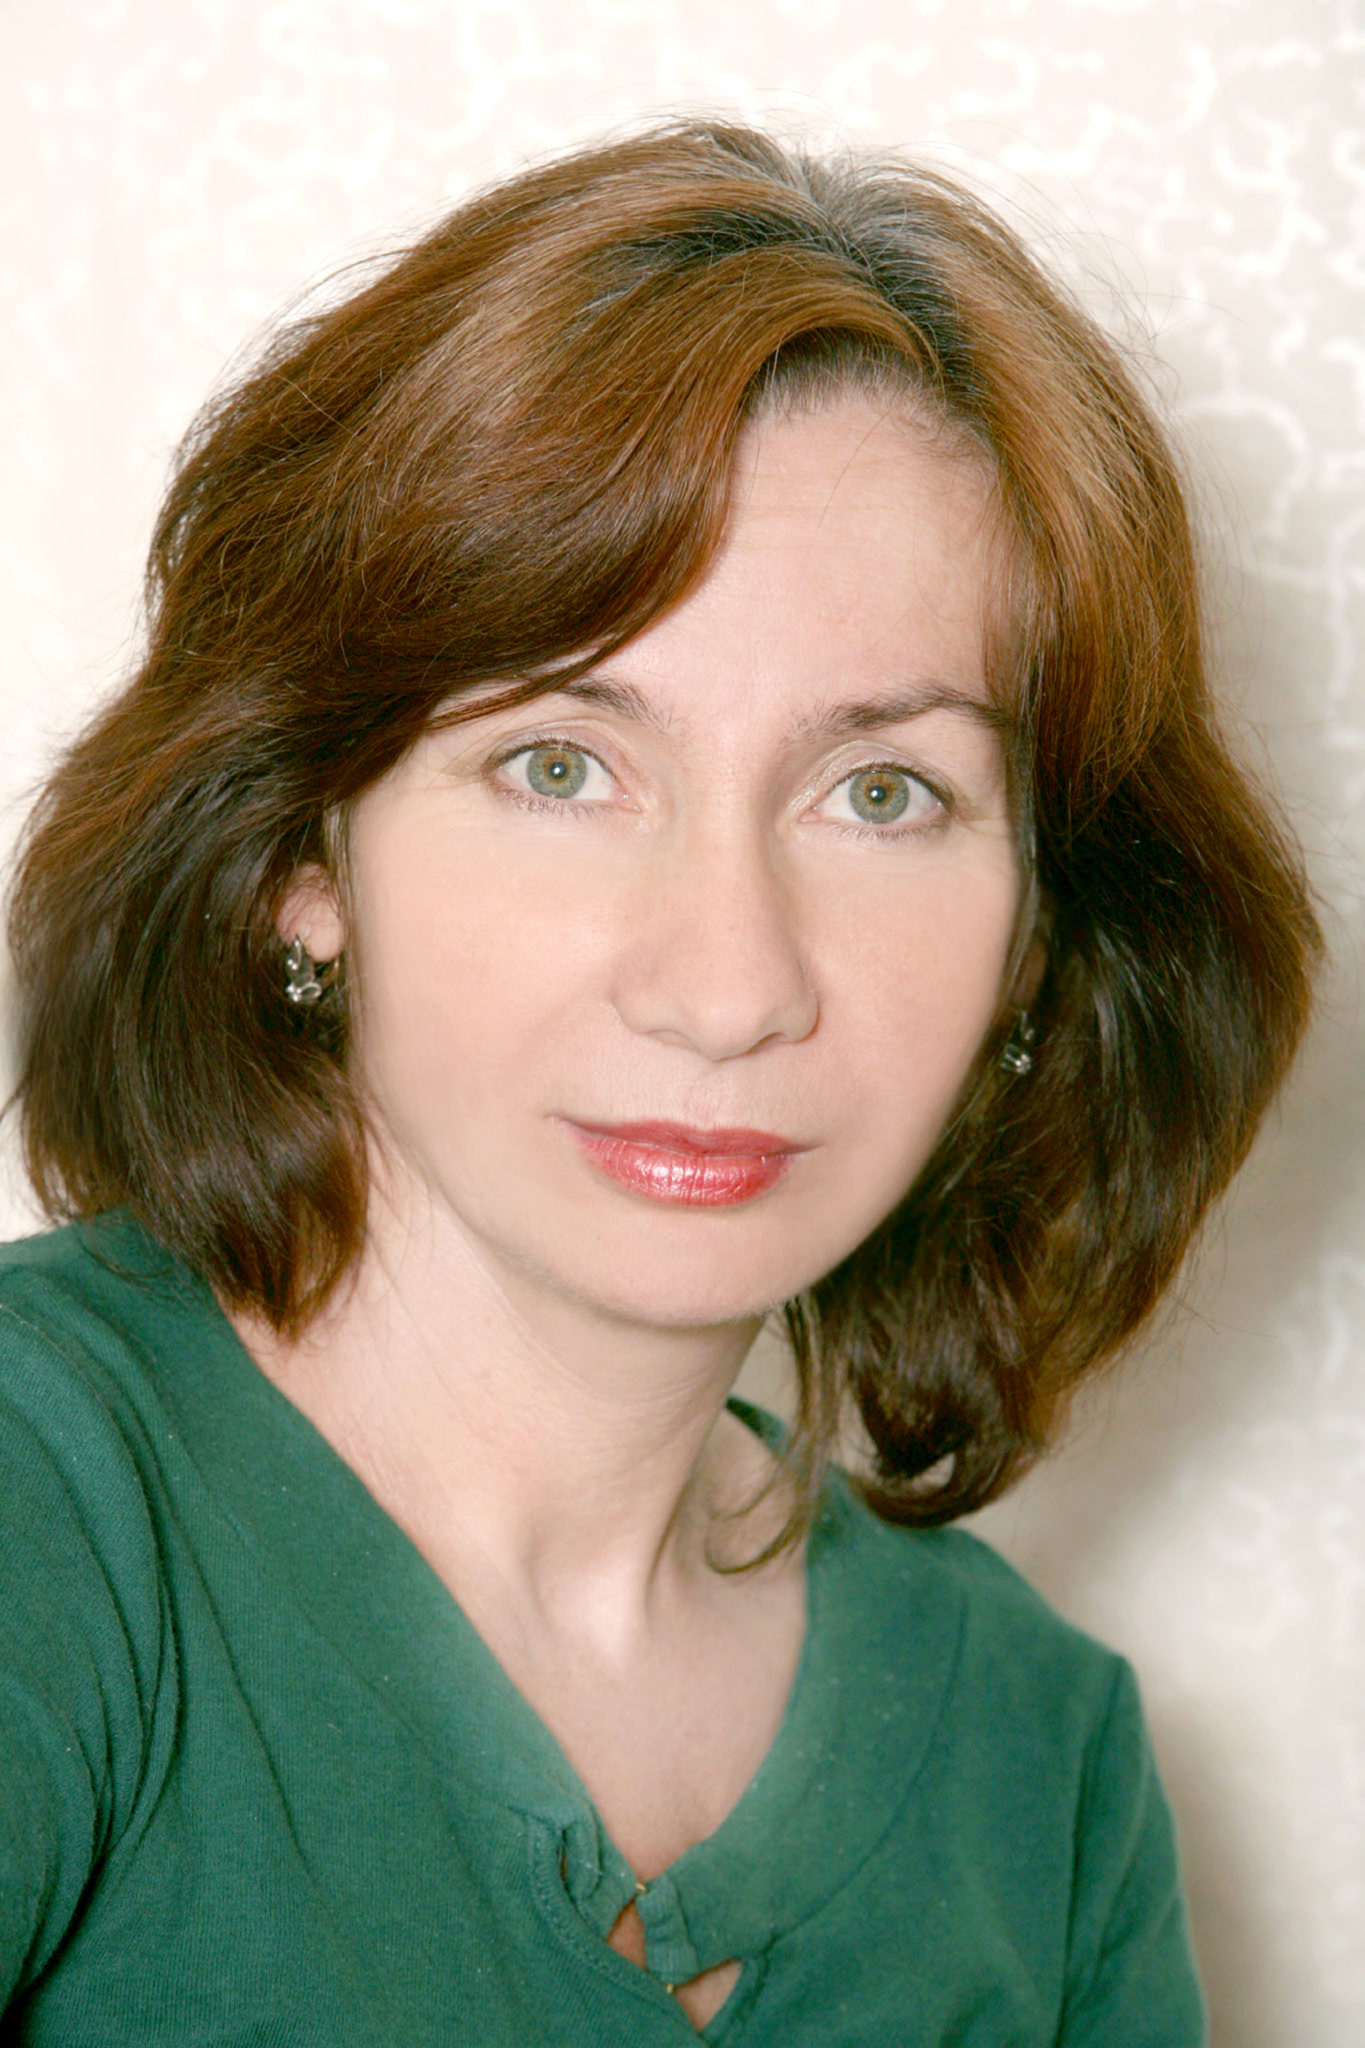 Russia: Effectively and impartially investigate the murder of Natalia Estemirova